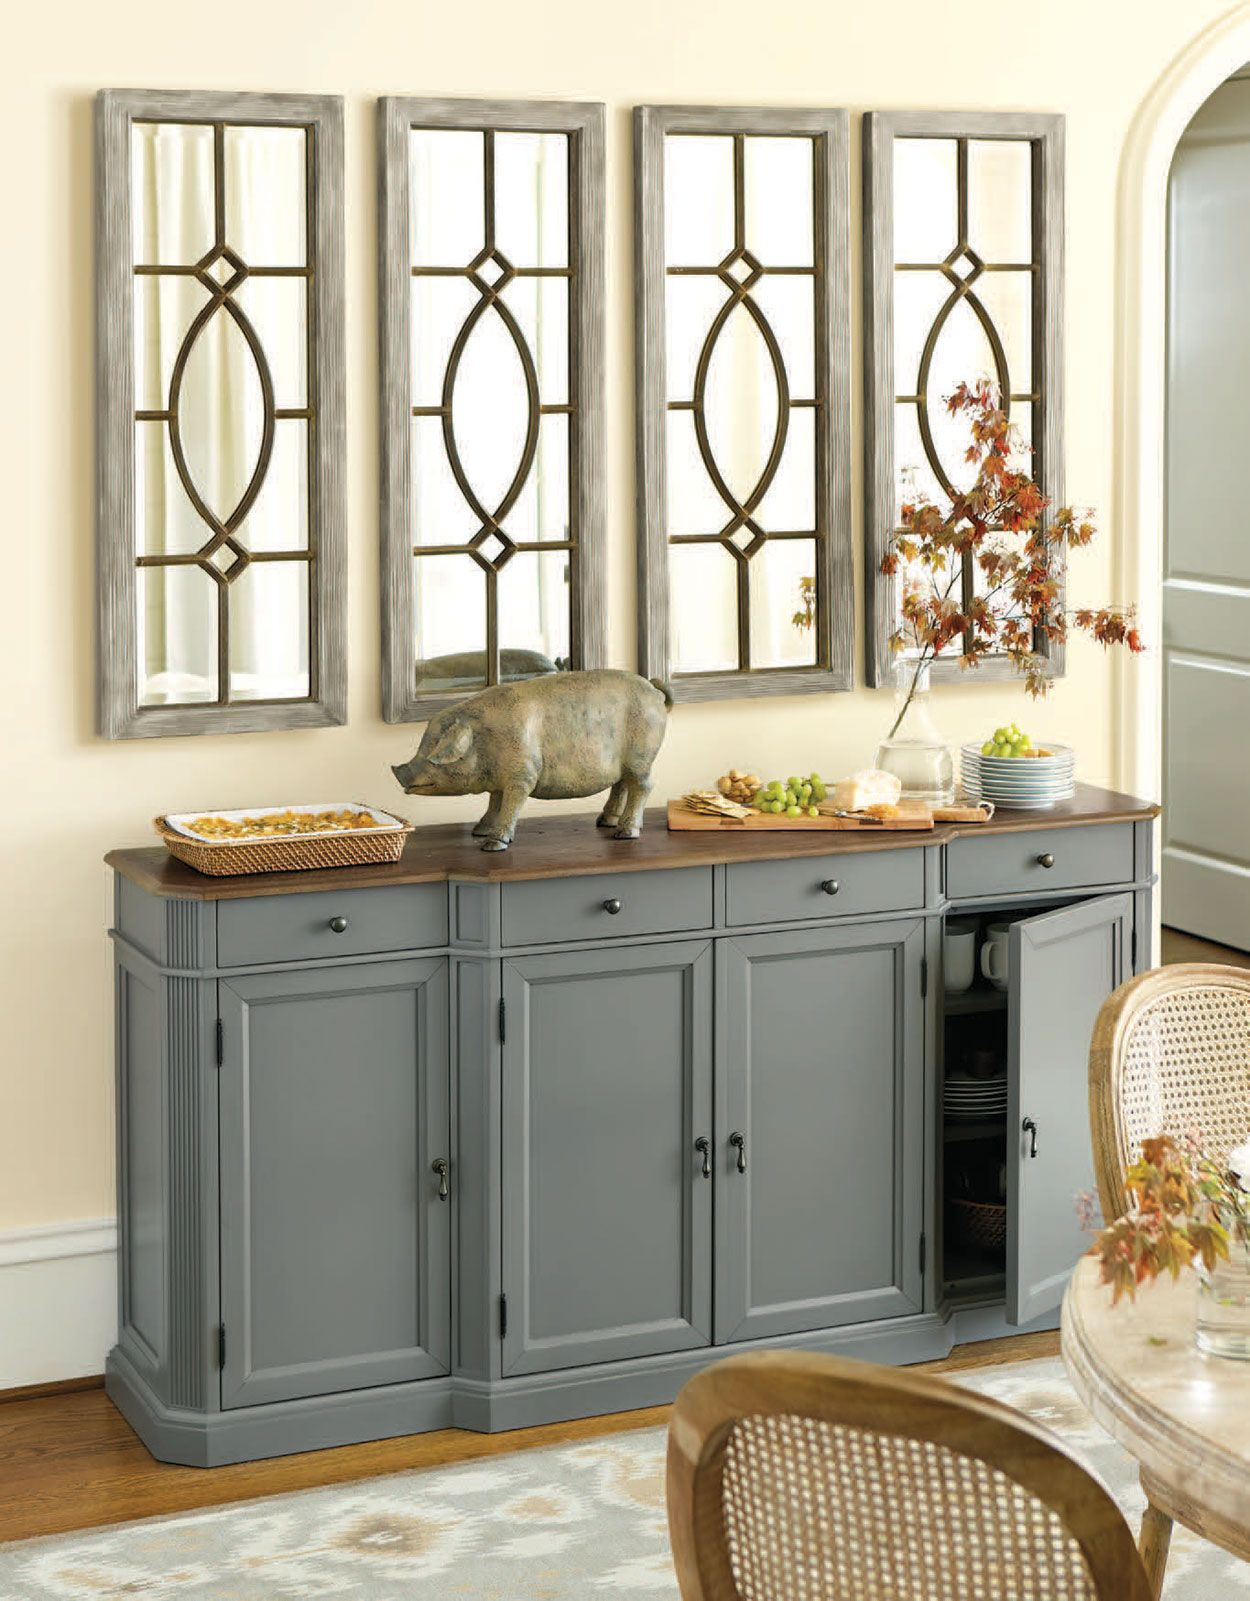 Four Of Our Garden District Mirrors Create The Feel Of A Window Over This  Dining Room Console Table.